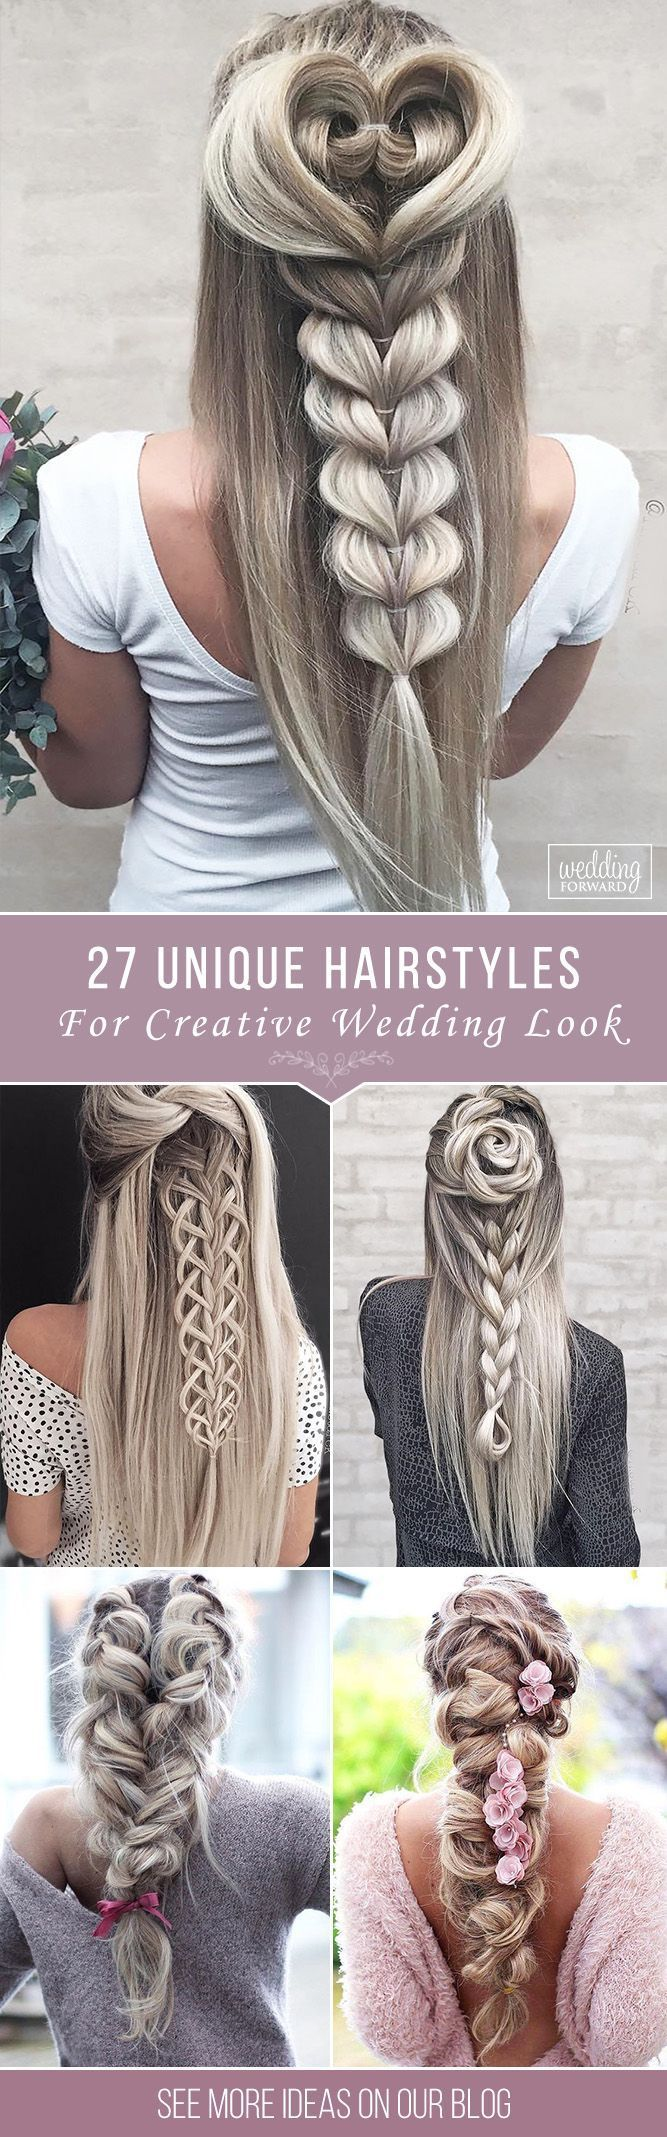 27 Creative & Unique Wedding Hairstyles ❤ From creative hairstyles to